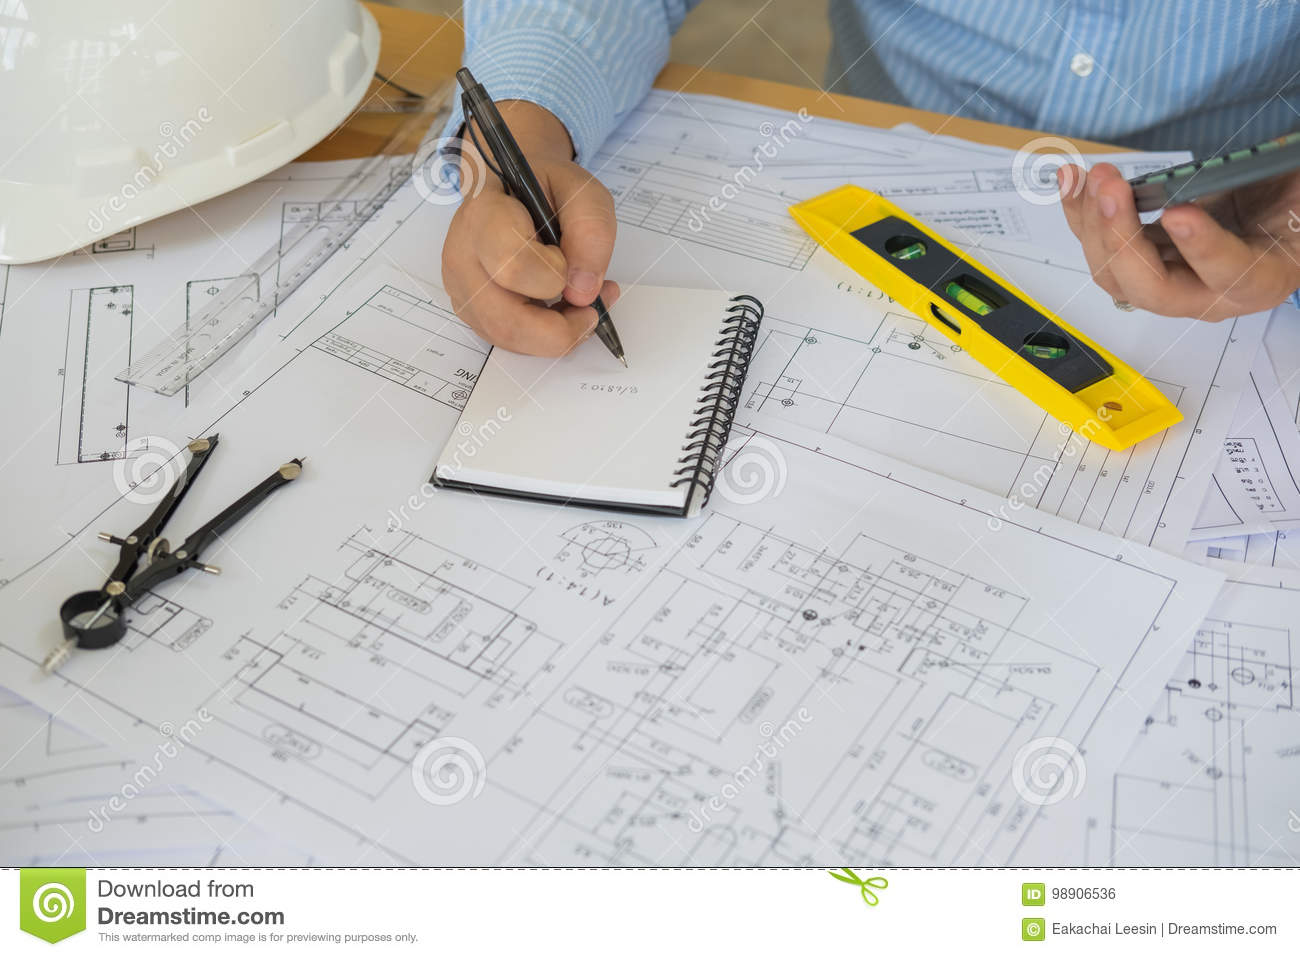 Architect or planner working on drawings for construction plans